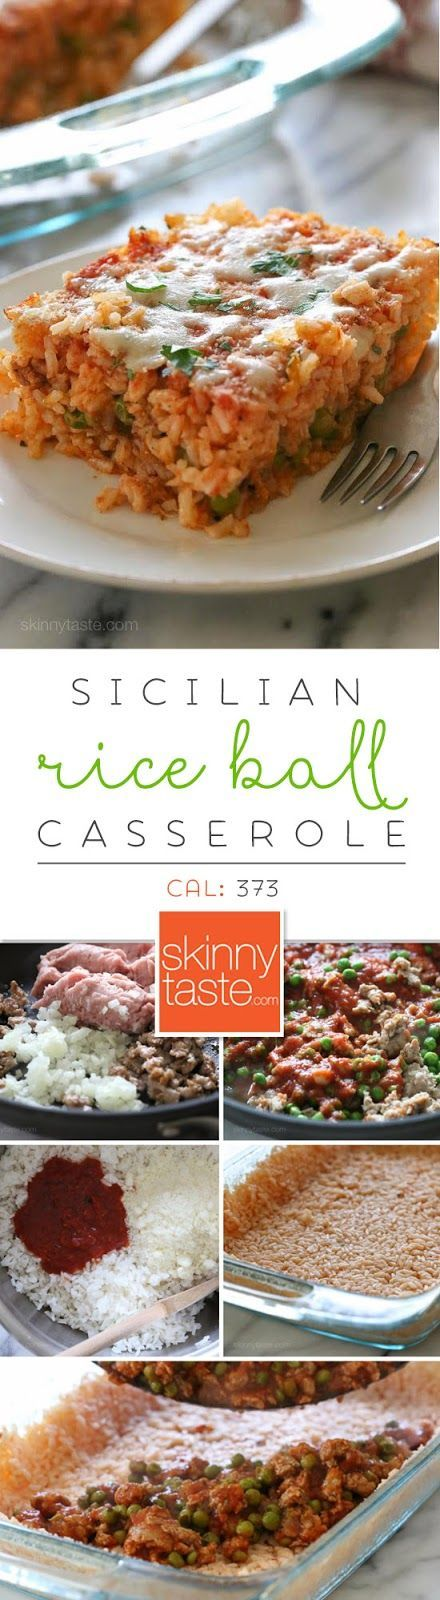 Sicilian Rice Ball Casserole – everything you love about arancini made into an easy casserole for weeknight dinners. Freezer friendly and kid-friendly! Great for the holidays!